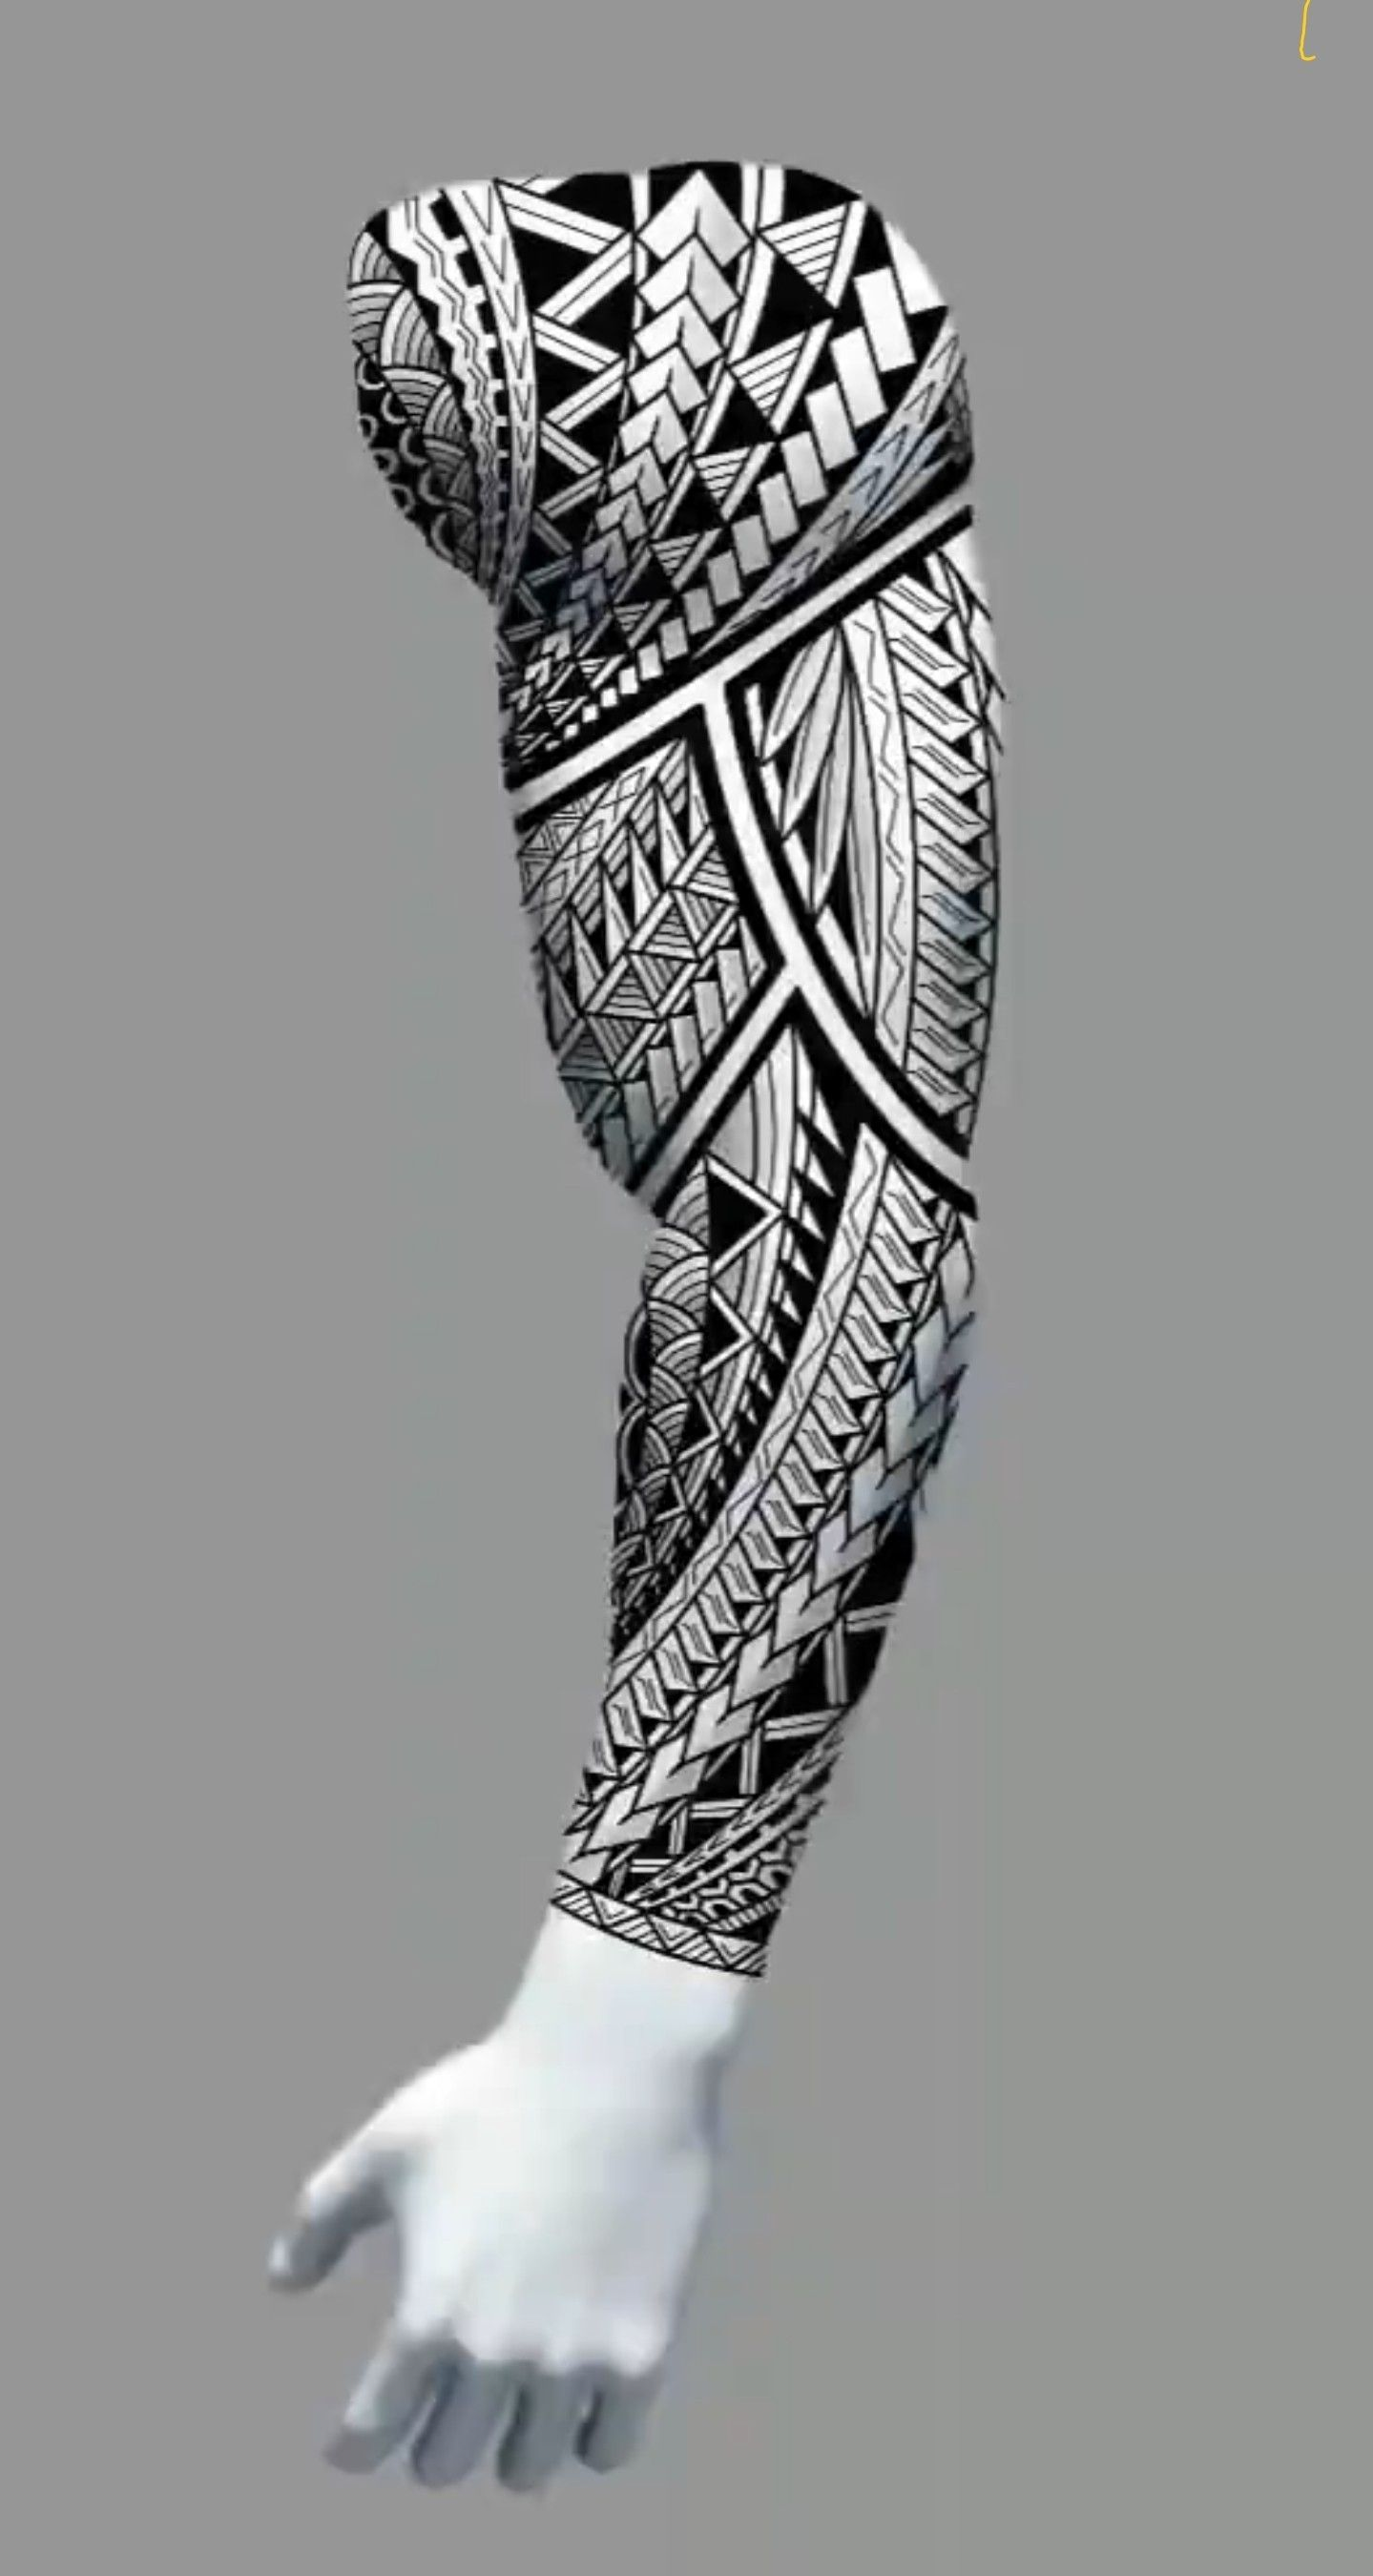 Pin By Ruben Armando On Tattoo Preferiti In 2020 Maori Tattoo Designs Tribal Sleeve Tattoos Maori Tattoo